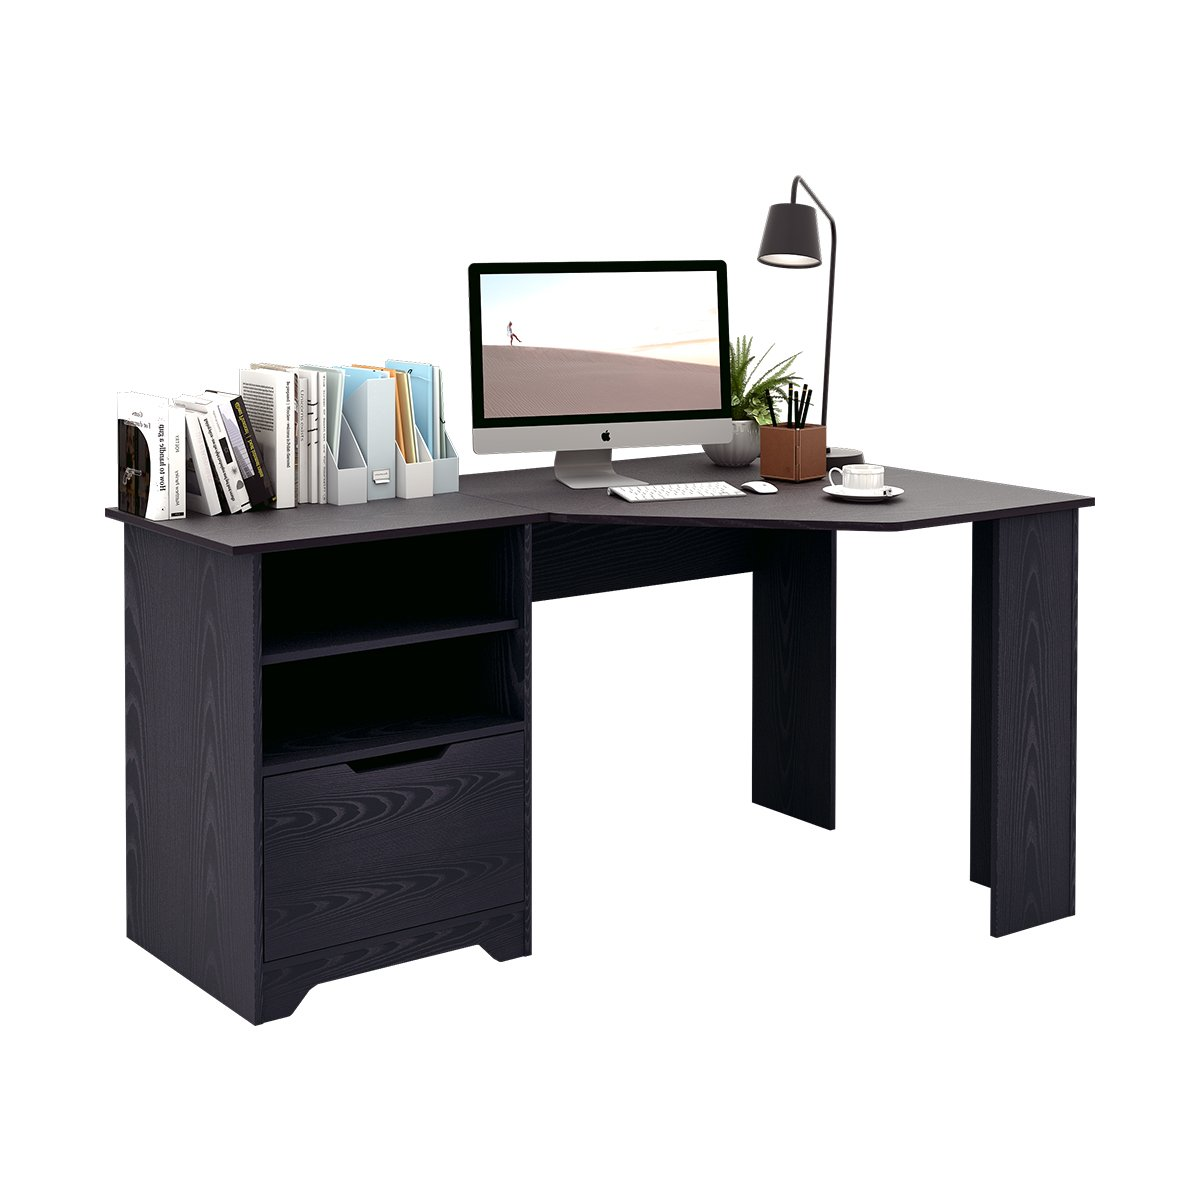 File Cabinet Desk - Best for the Money & Top-Rated in 2019!